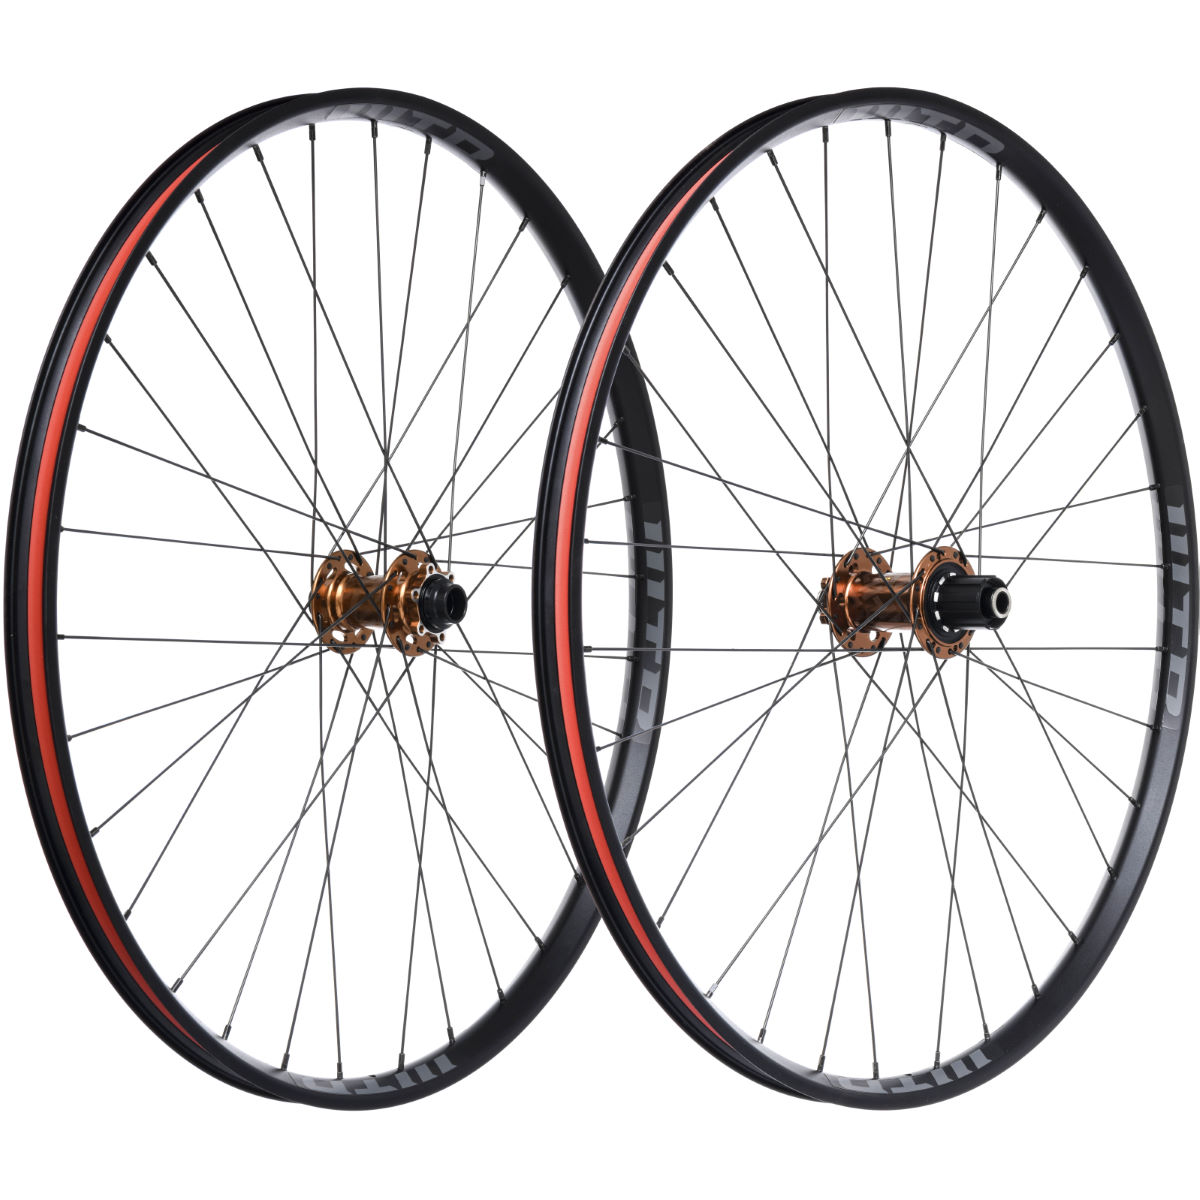 Nukeproof Nukeproof Horizon V1 on KOM Tough i29 Wheelset   Wheel Sets